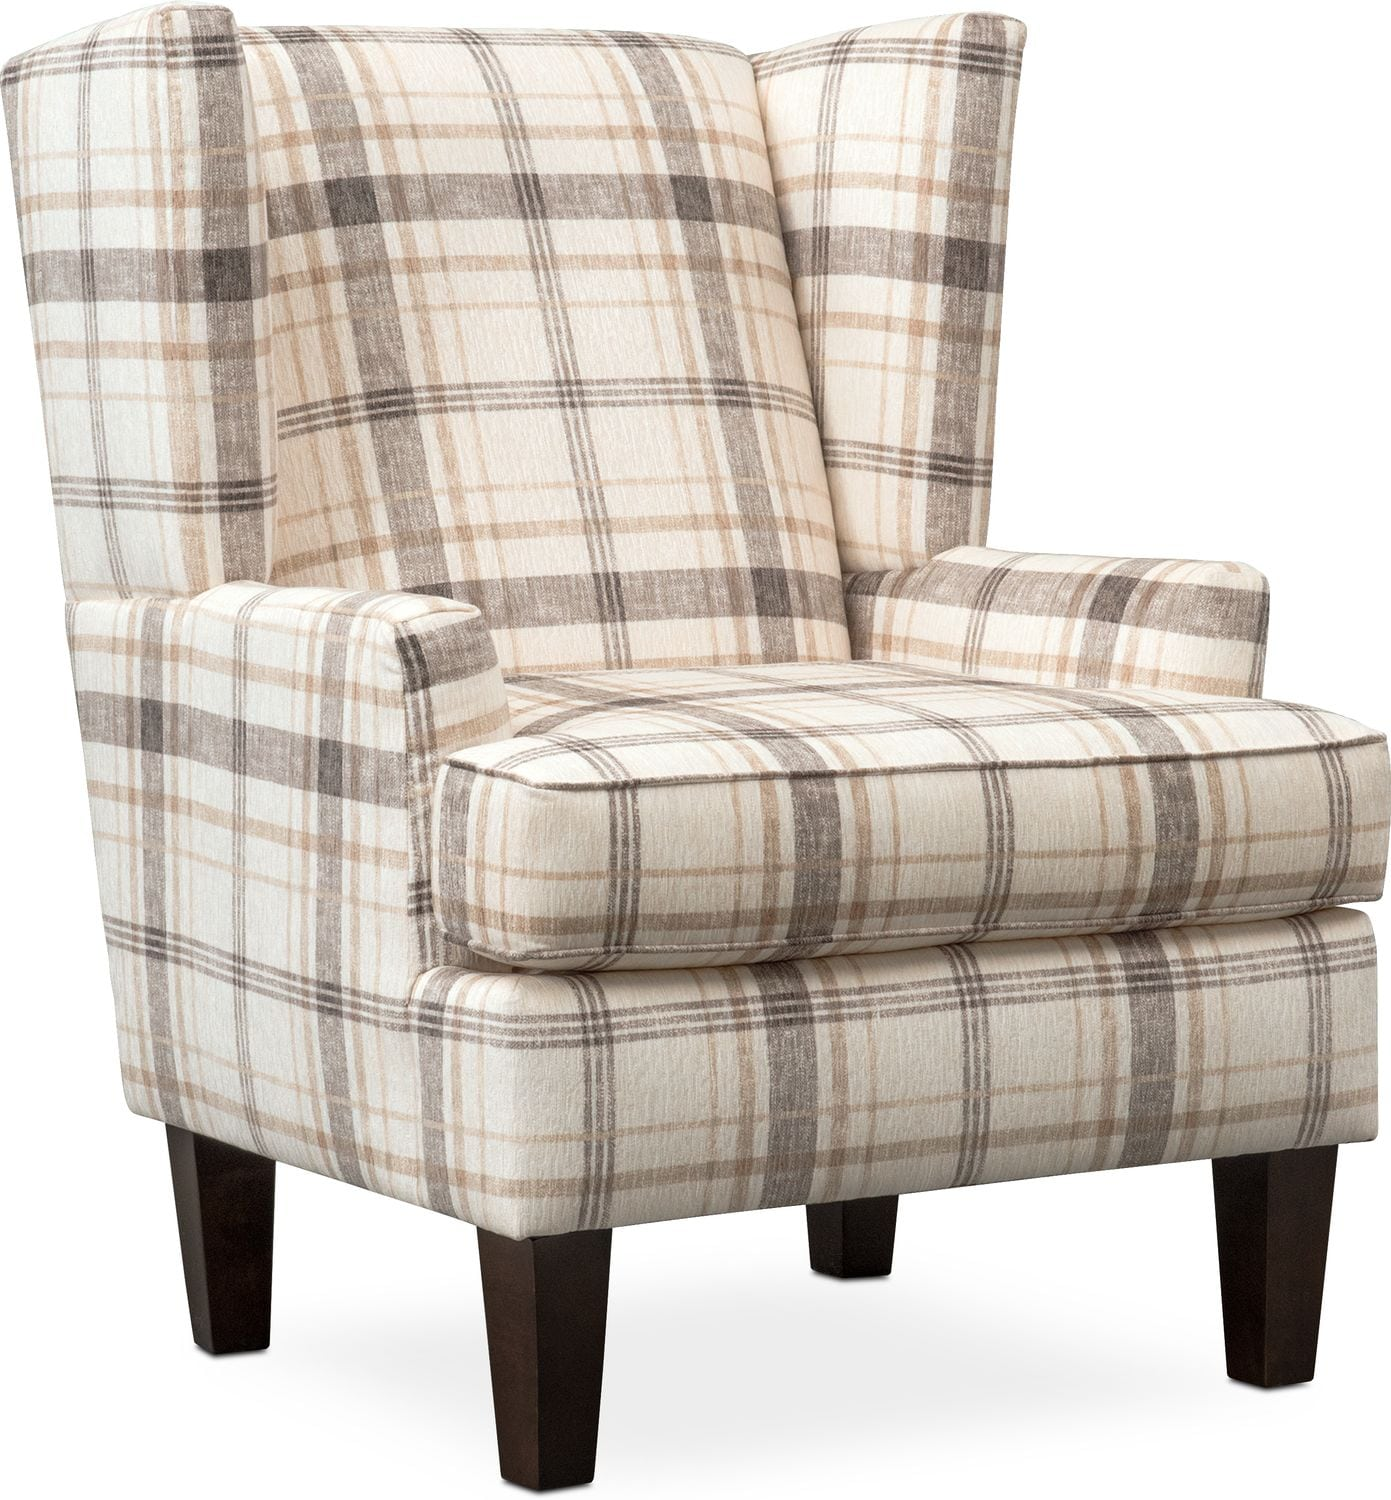 Plaid Living Room Chairs  Design Ideas Inspirations